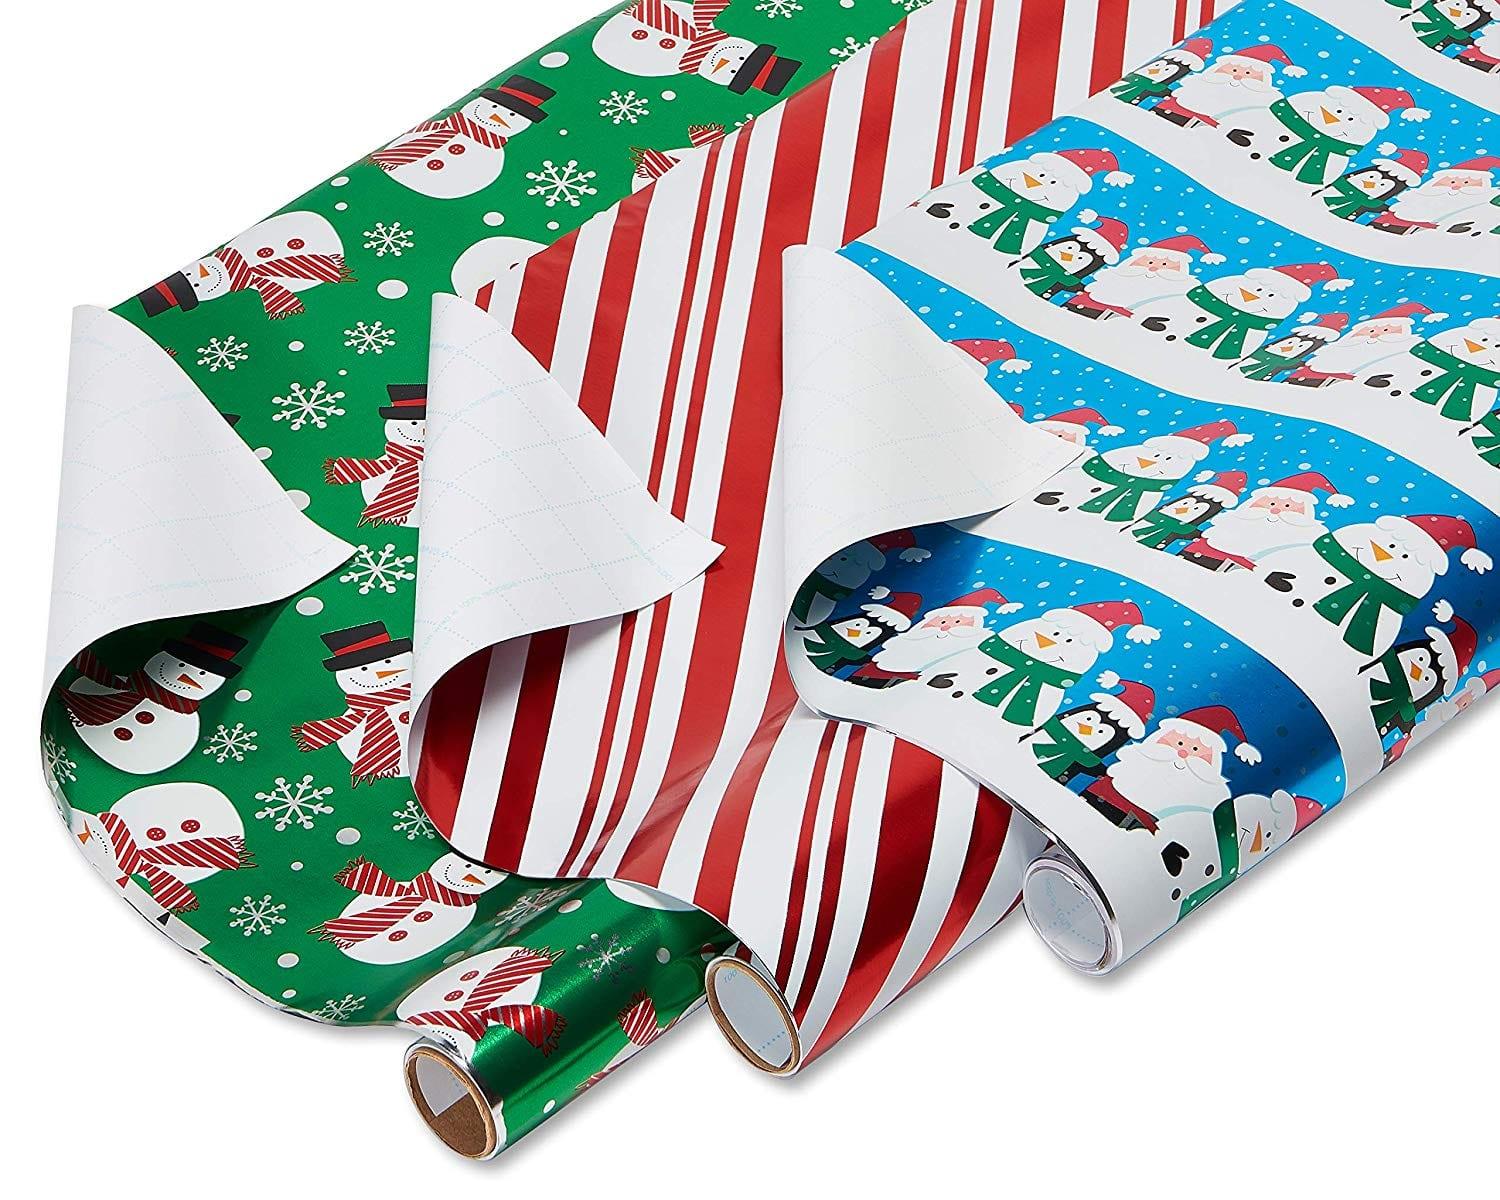 American Greetings Foil Christmas Bulk Gift Wrapping Paper Bundle with Gridlines, 3 Rolls; Santa and Friends, Candy Cane Stripes and Snowmen, 90 Total sq. ft. $3.79